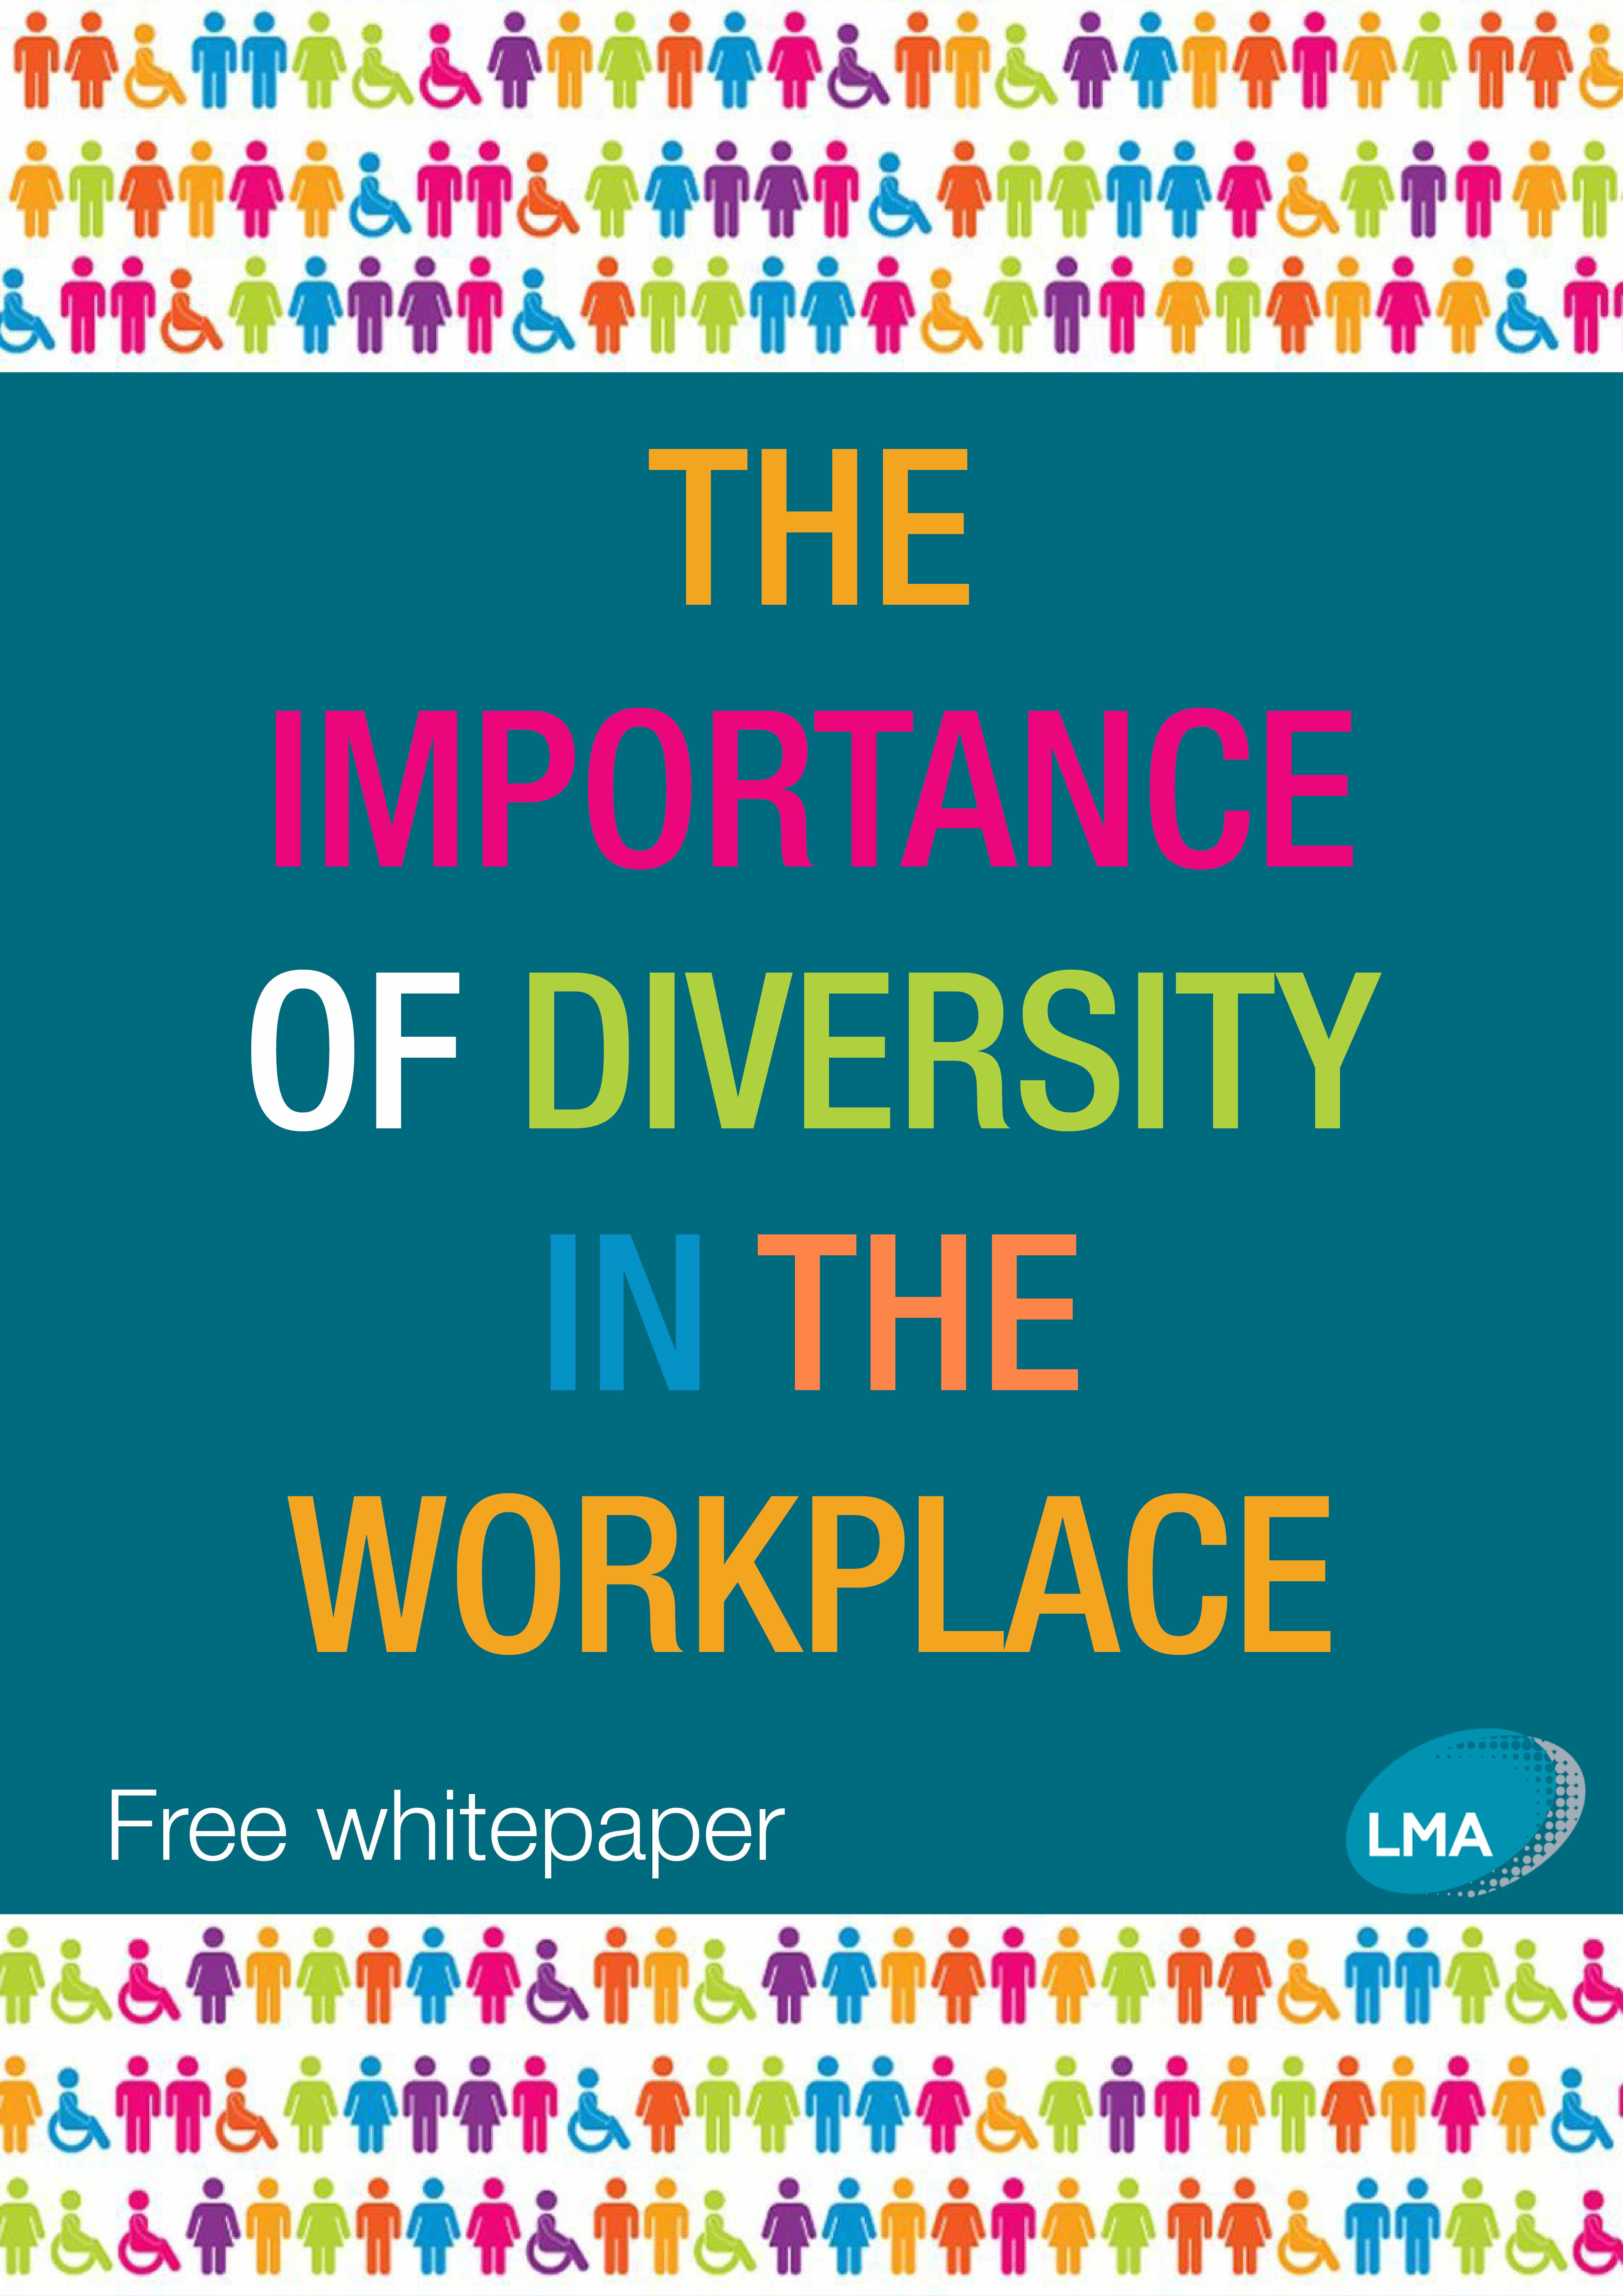 free whitepaper diversity in the workplace lma